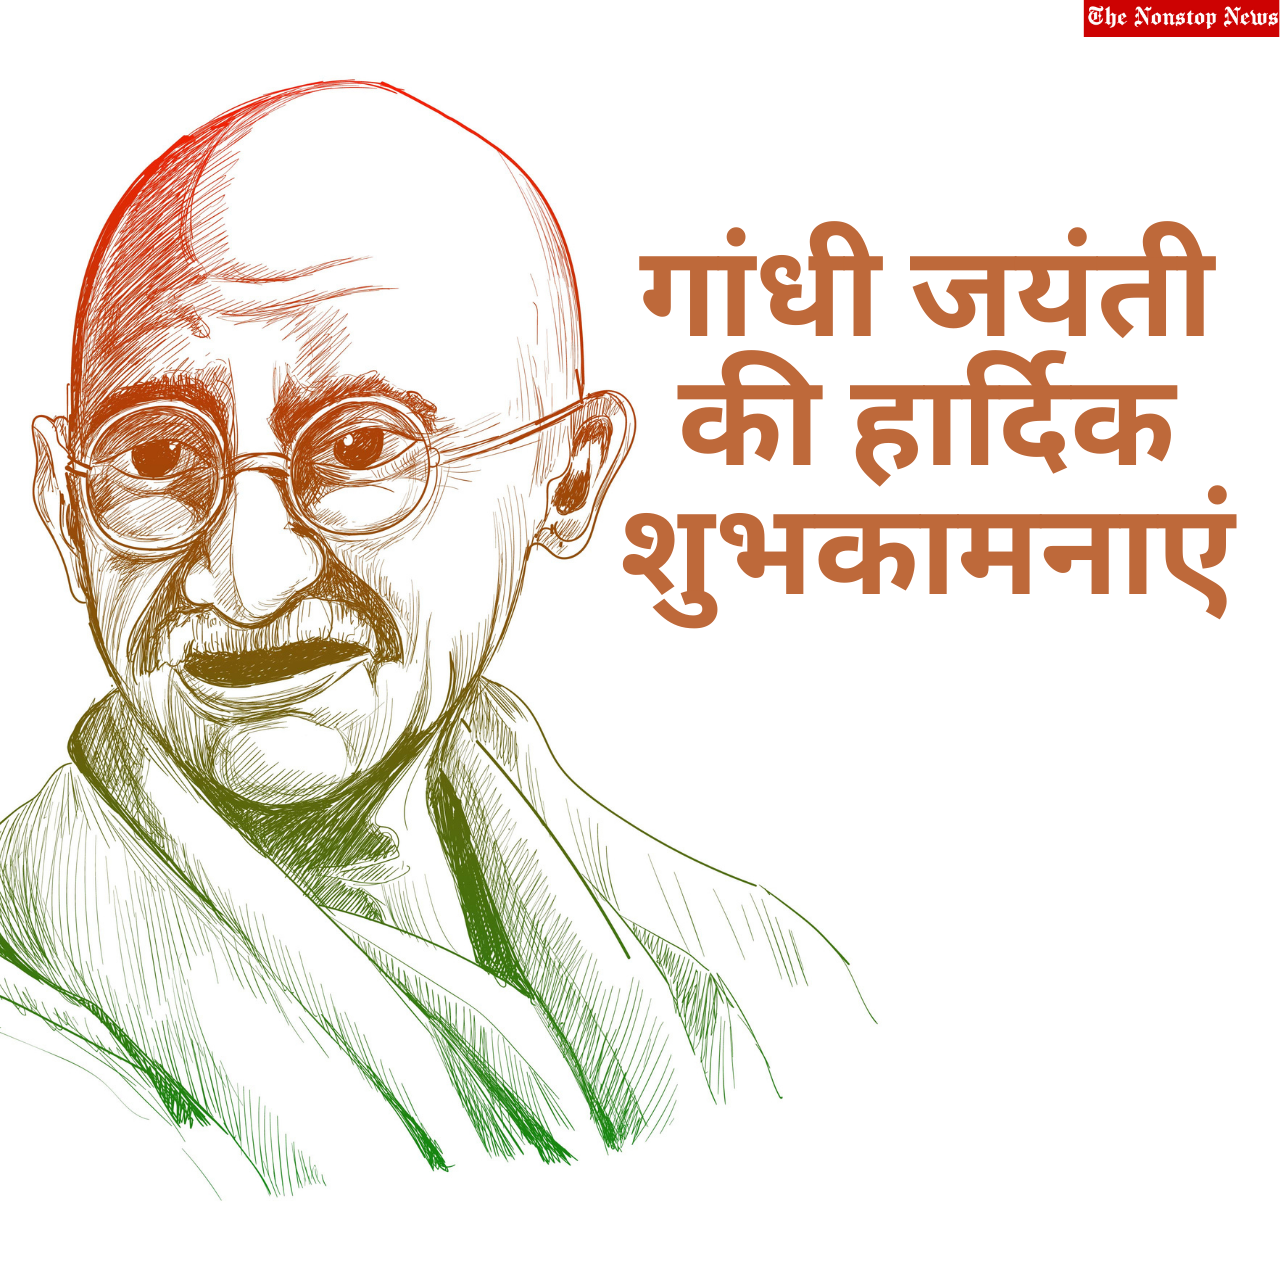 Gandhi Jayanti 2021 Hindi Wishes, Quotes, Messages, Wishes, Greetings, and HD Images to share